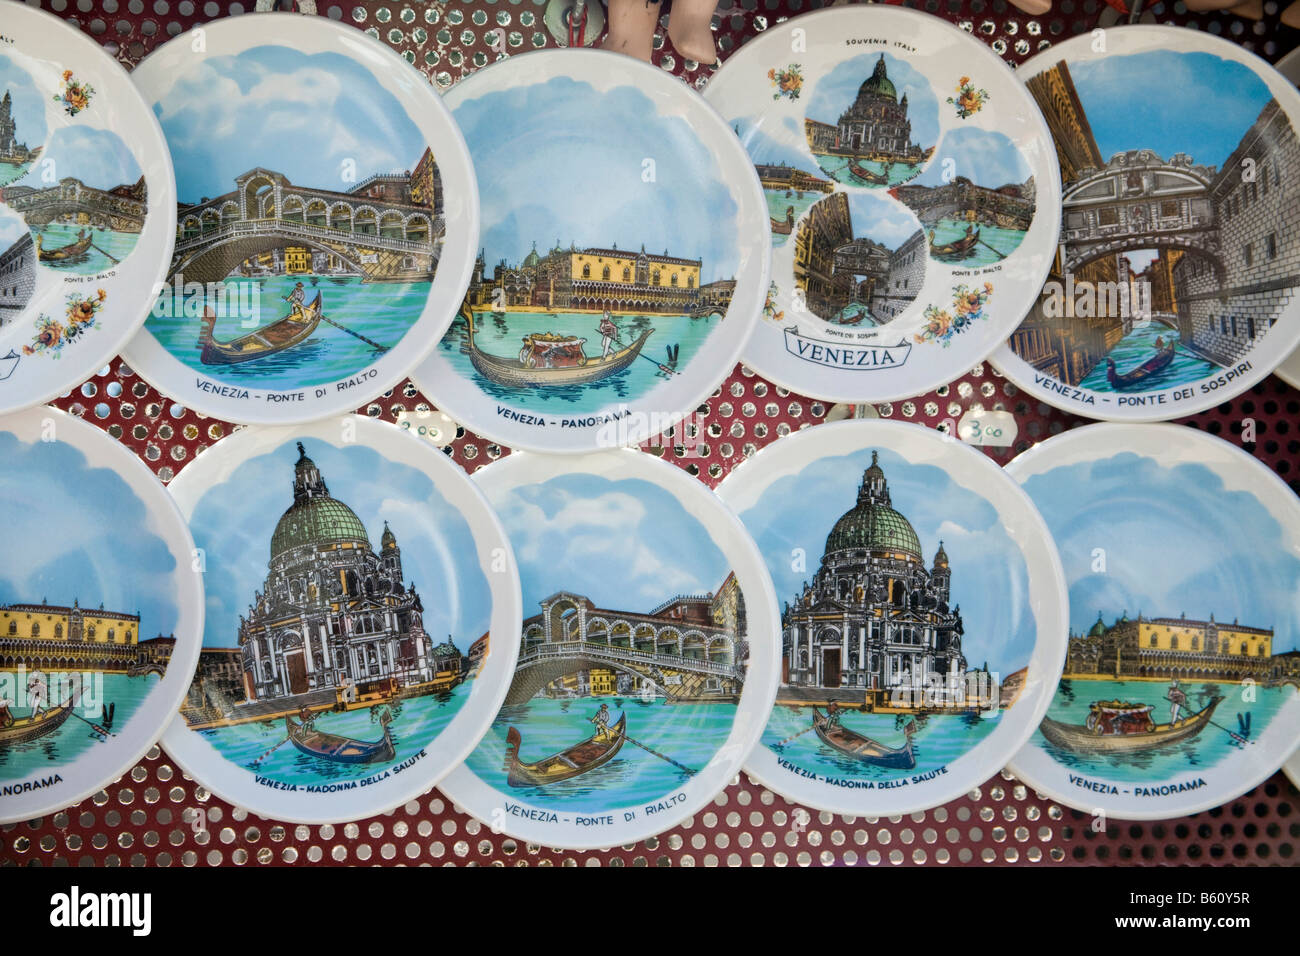 Painted plate souvenirs stock photos painted plate souvenirs keepsakes souvenir plates with motives from venice veneto italy europe stock amipublicfo Choice Image